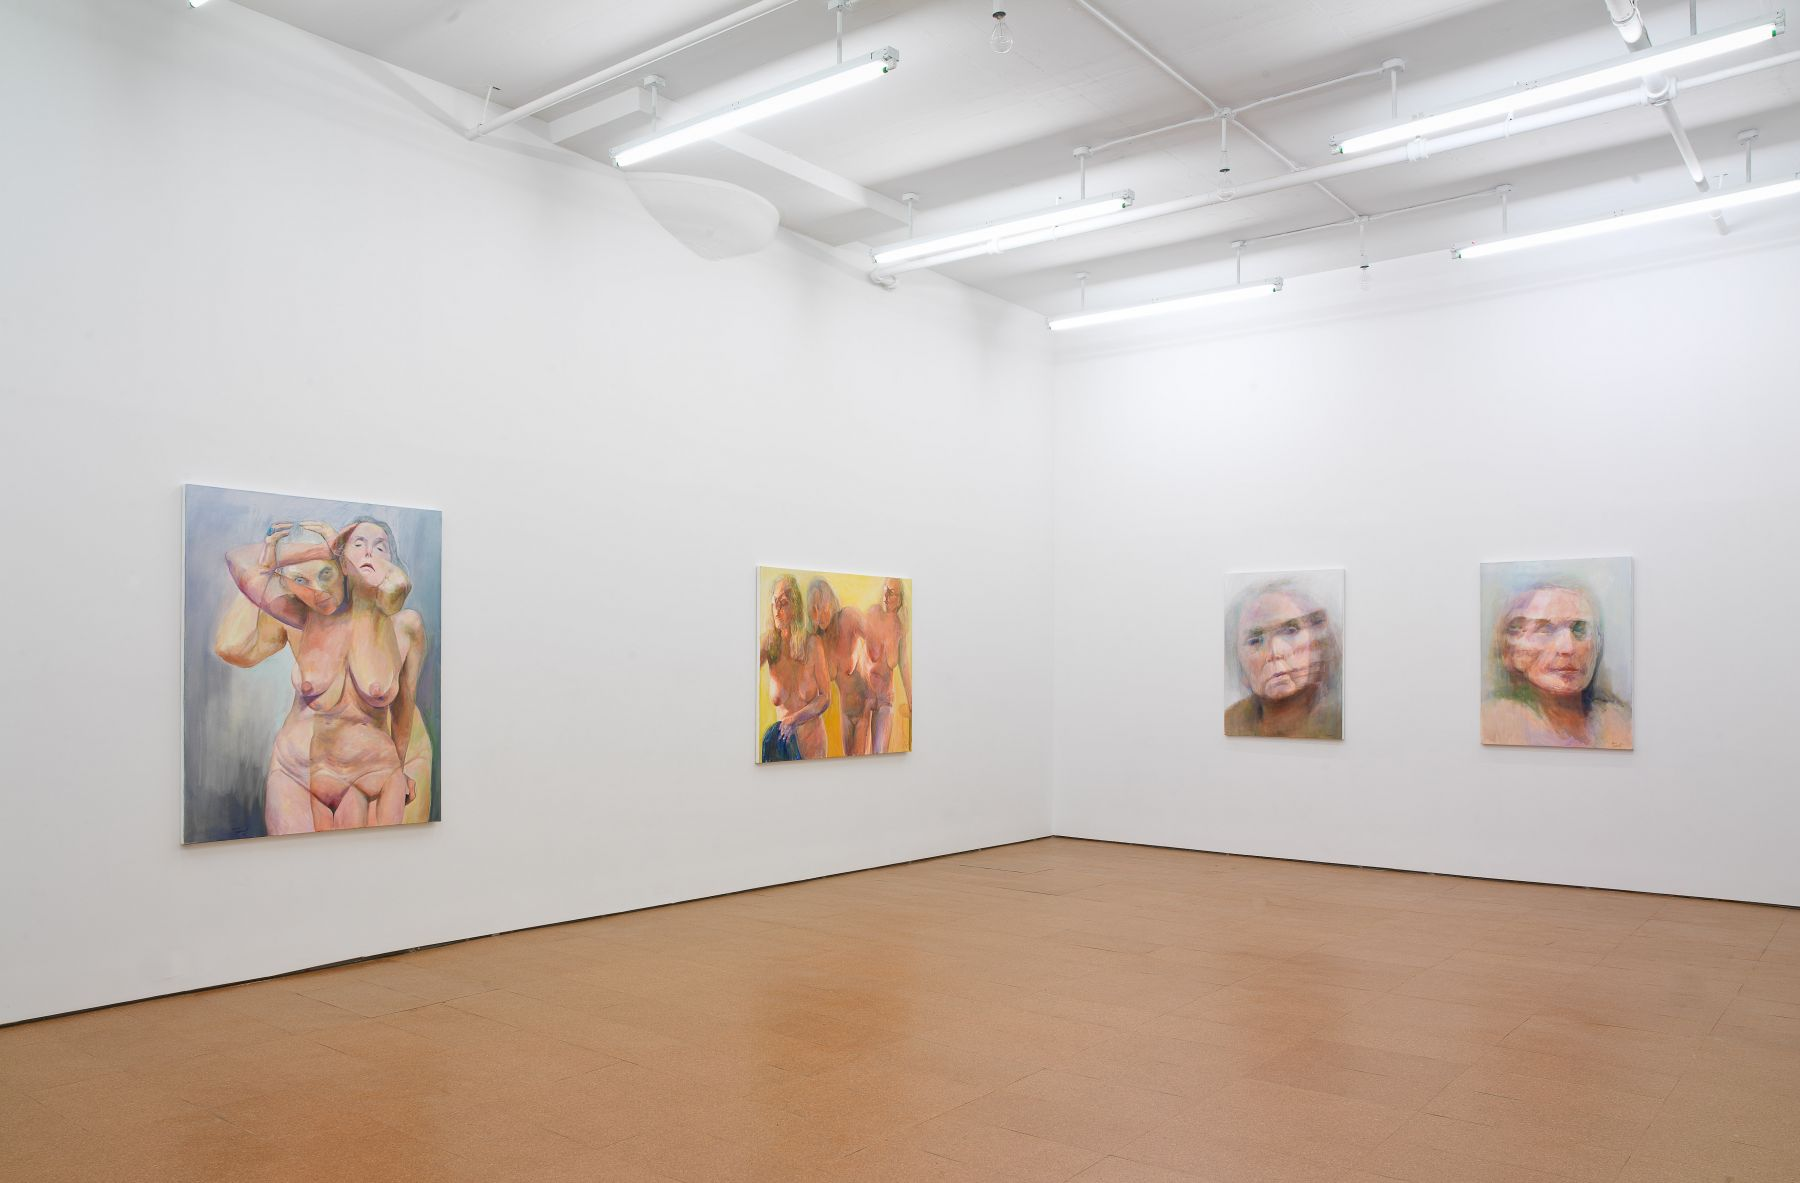 Joan Semmel, Installation view, Alexander Gray Associates, 2011